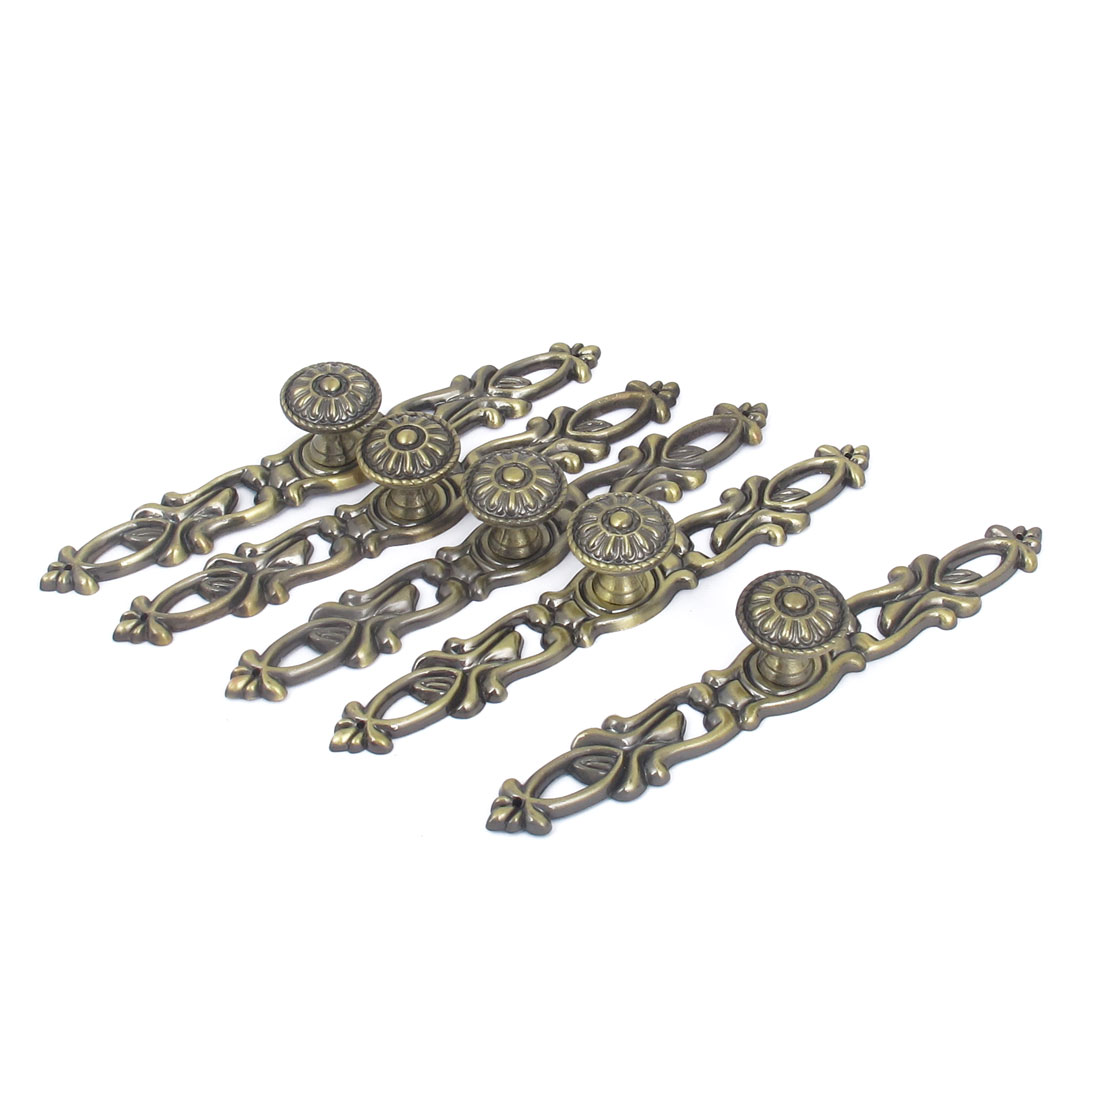 15cm Long Drawer Dresser Door Pull Handles Bronze Tone 5pcs